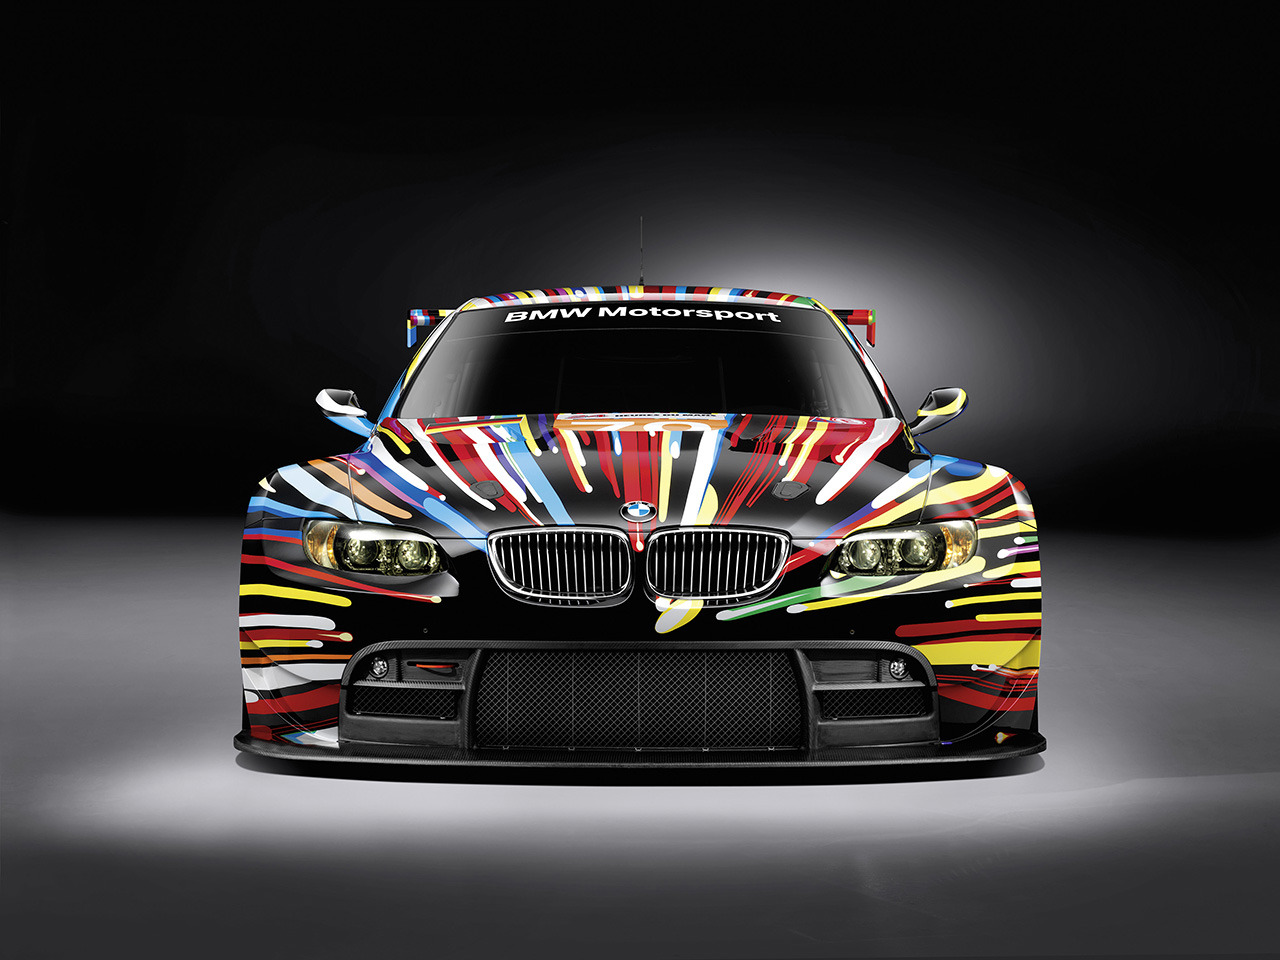 The 2010 BMW M3 GT2 Art Car designed by Jeff Koons